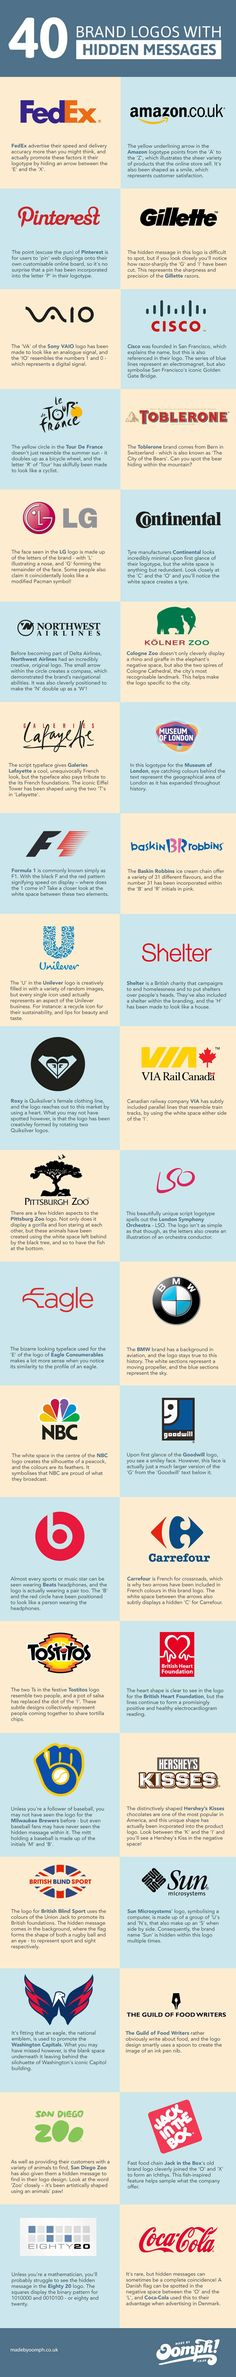 """40 Brand Logos with Hidden Messages   StockLogos.com -- Can't get too much of the classic """"hidden message in the logo"""" infographic. Or can we? #logo"""